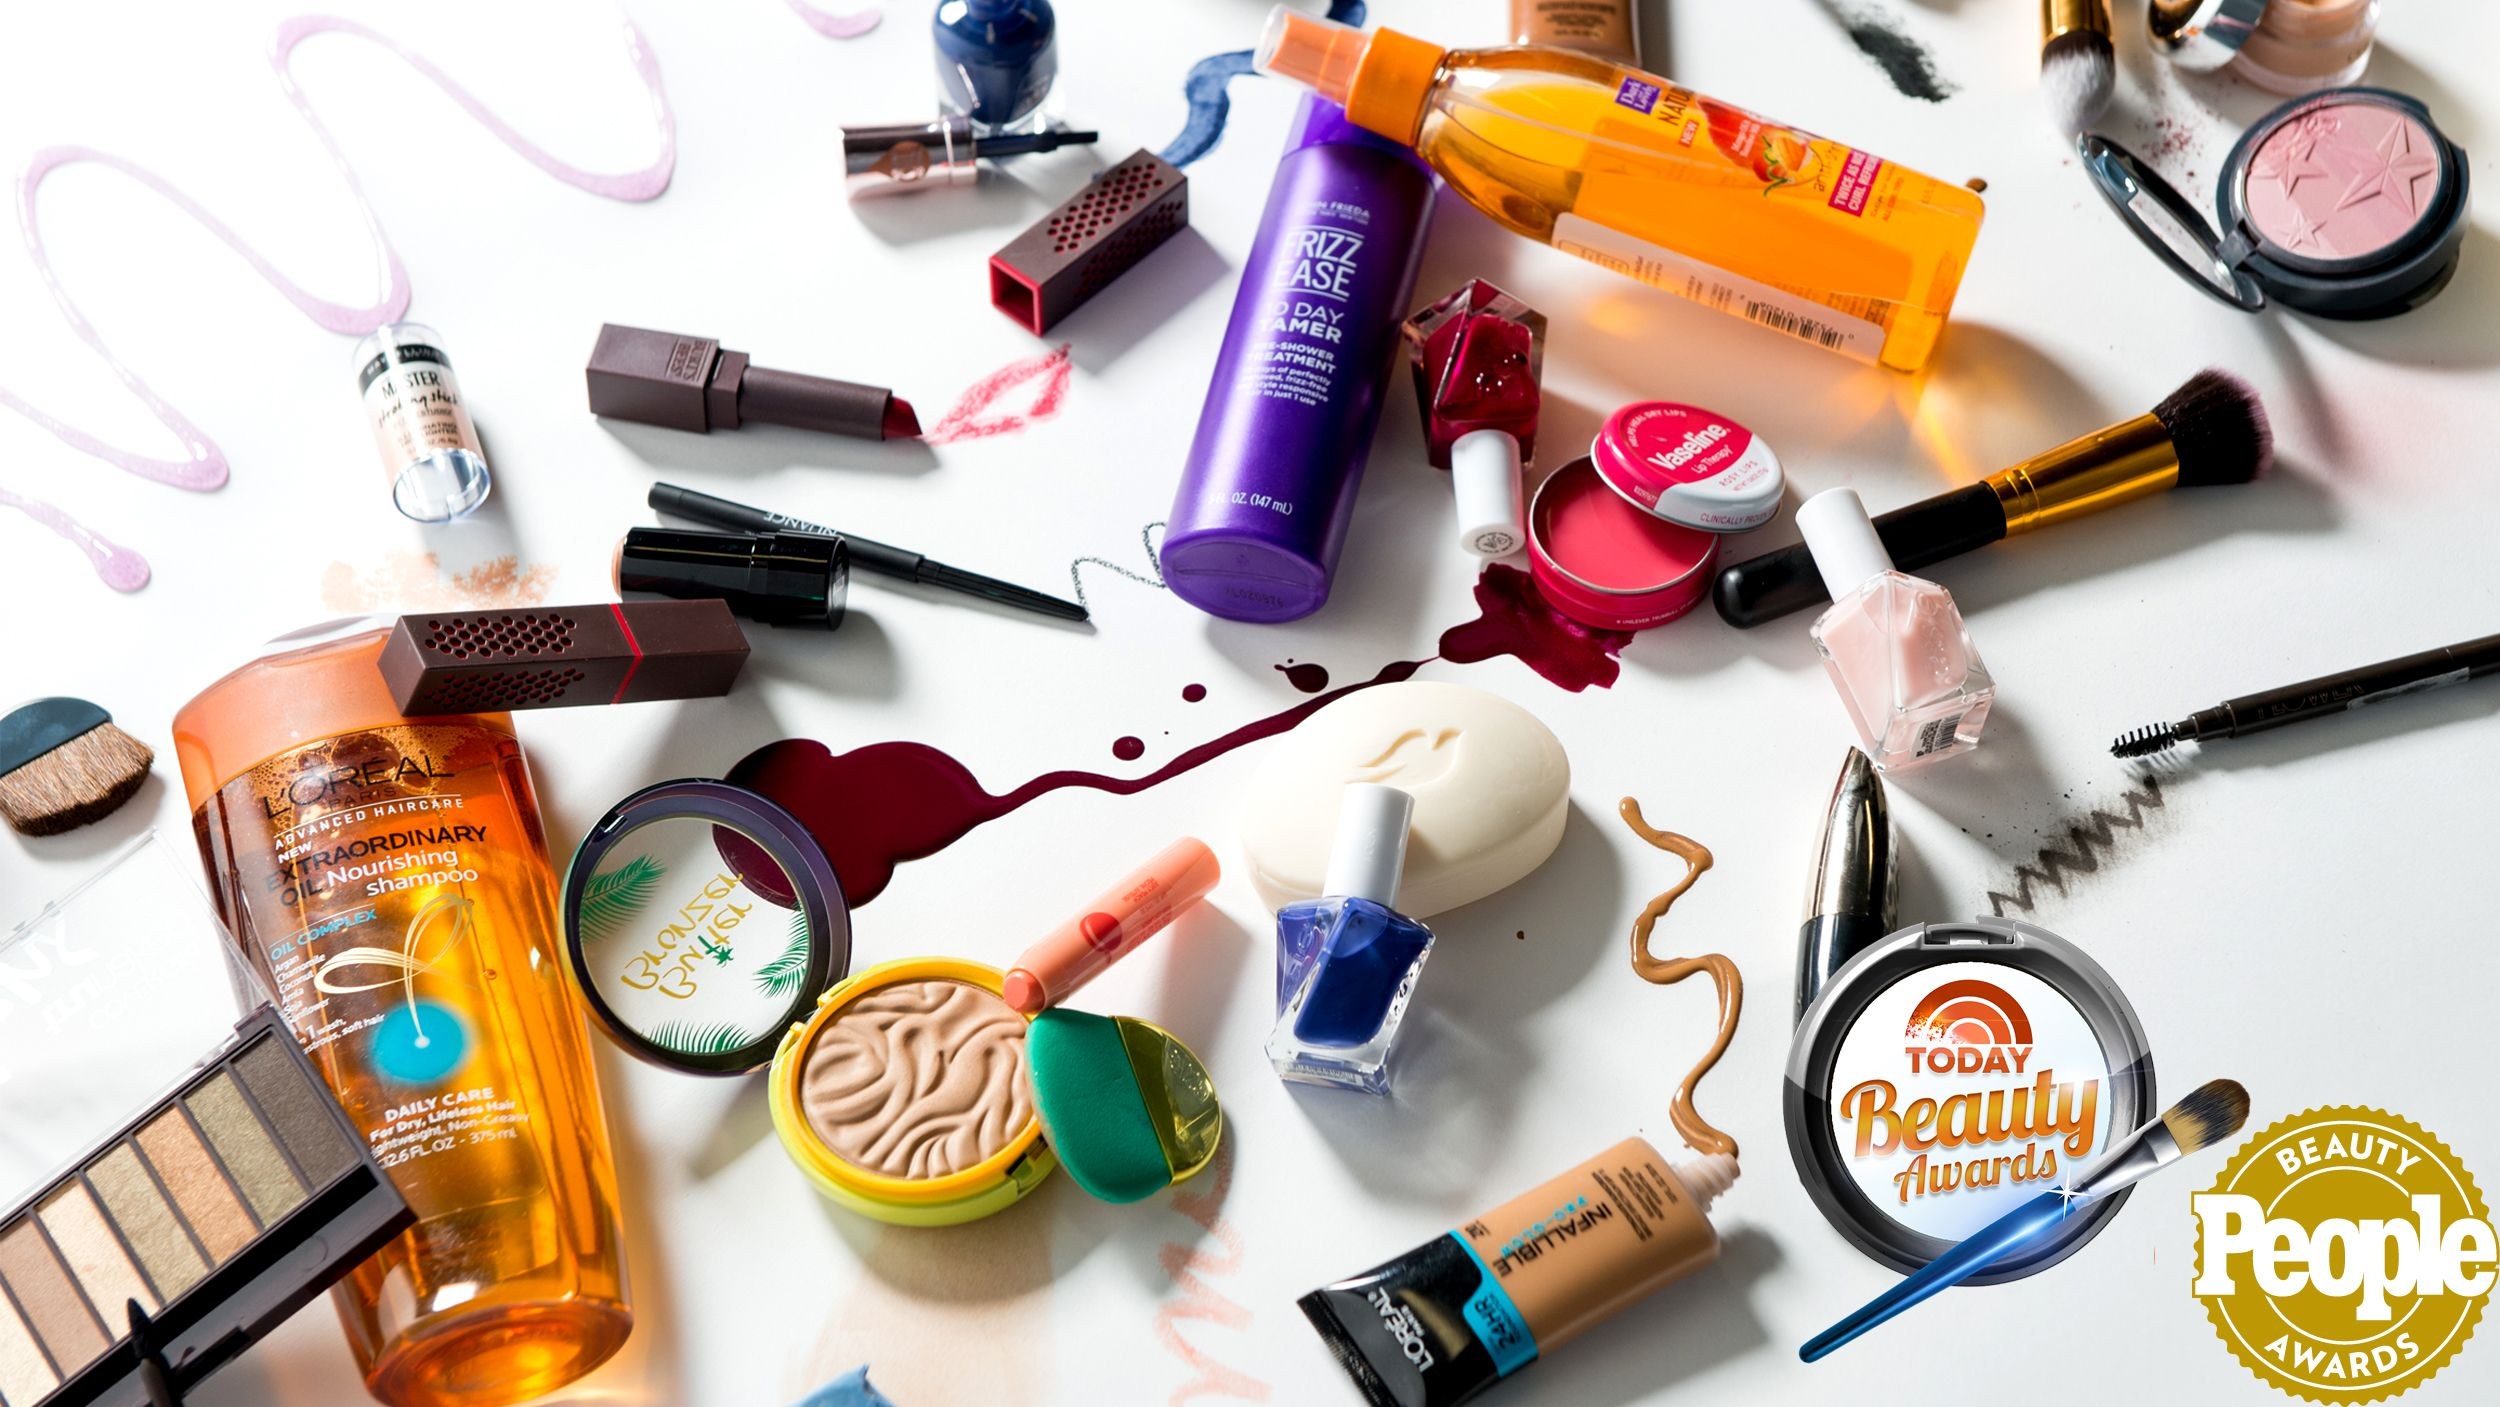 The 43 best drugstore beauty products of 2016